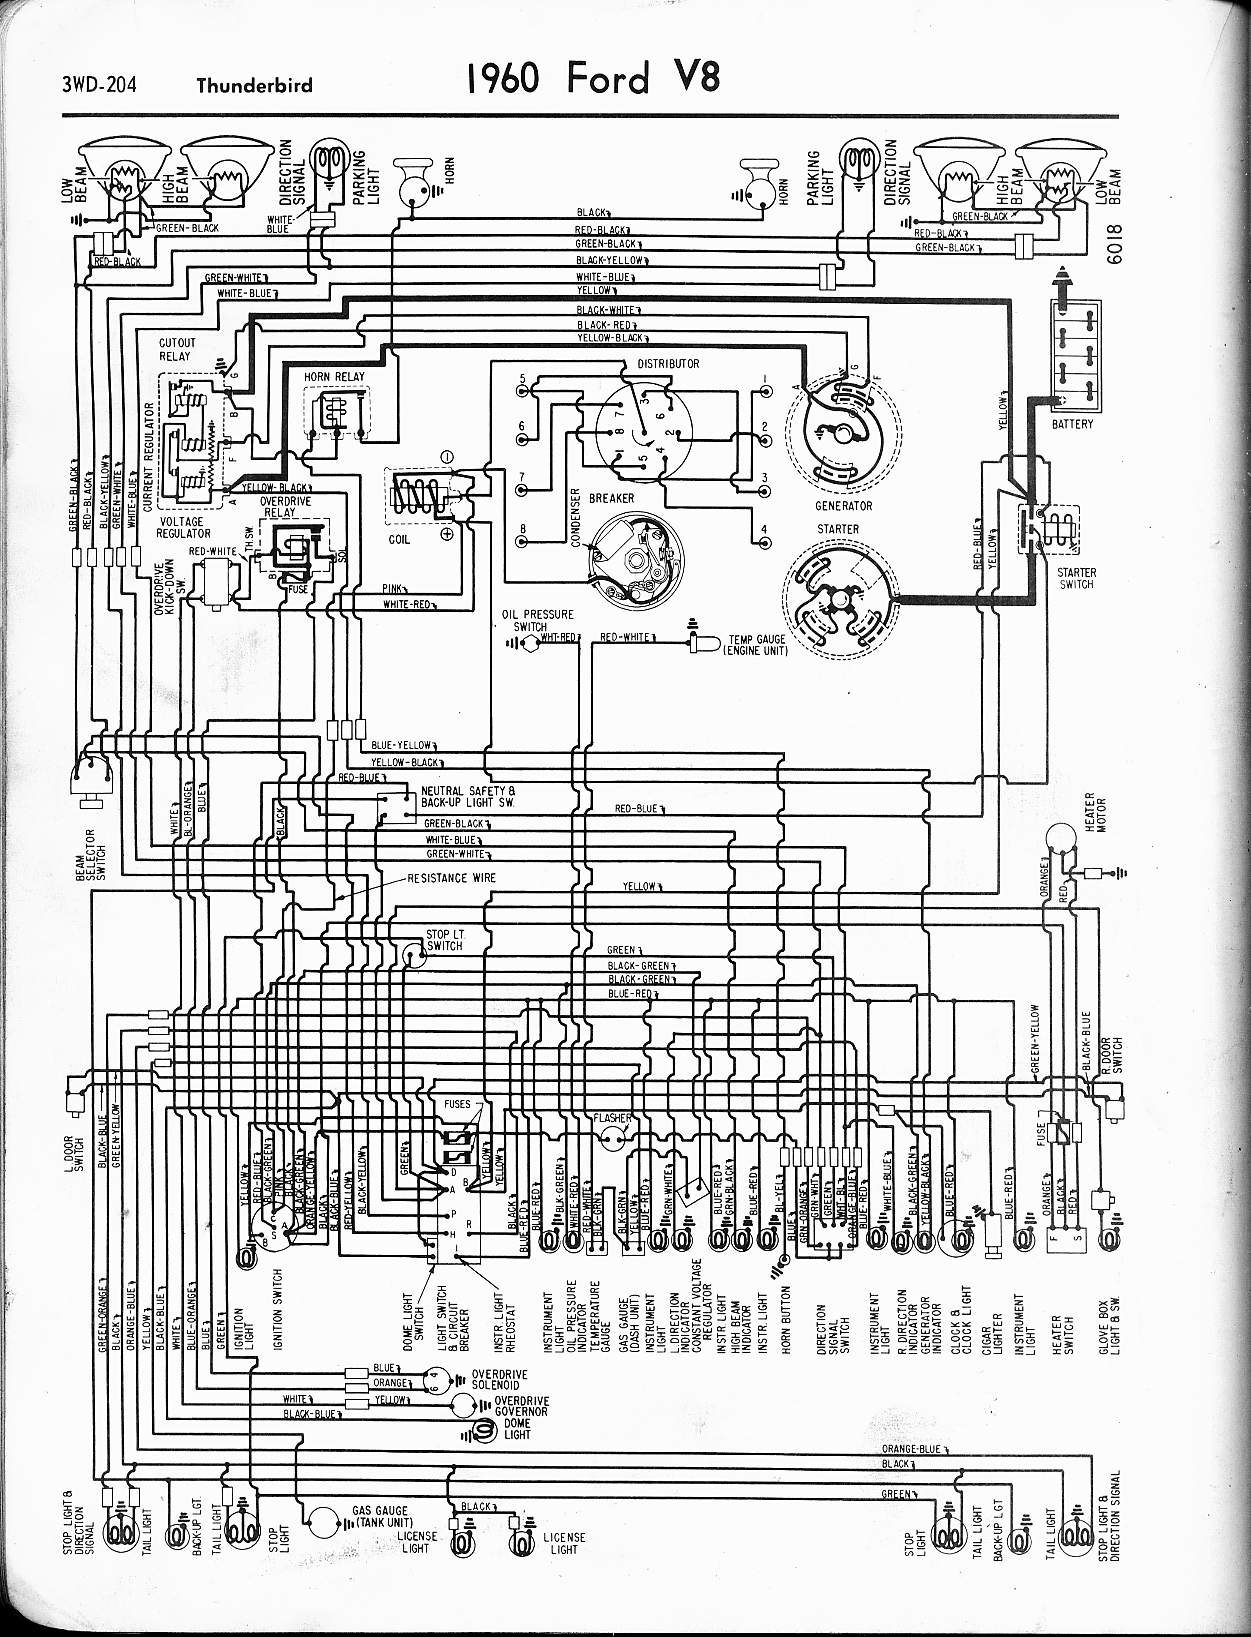 Remarkable Images Of 1961 Lincoln Continental Wiring Diagram Wiring Library Wiring Cloud Genionhyedimohammedshrineorg